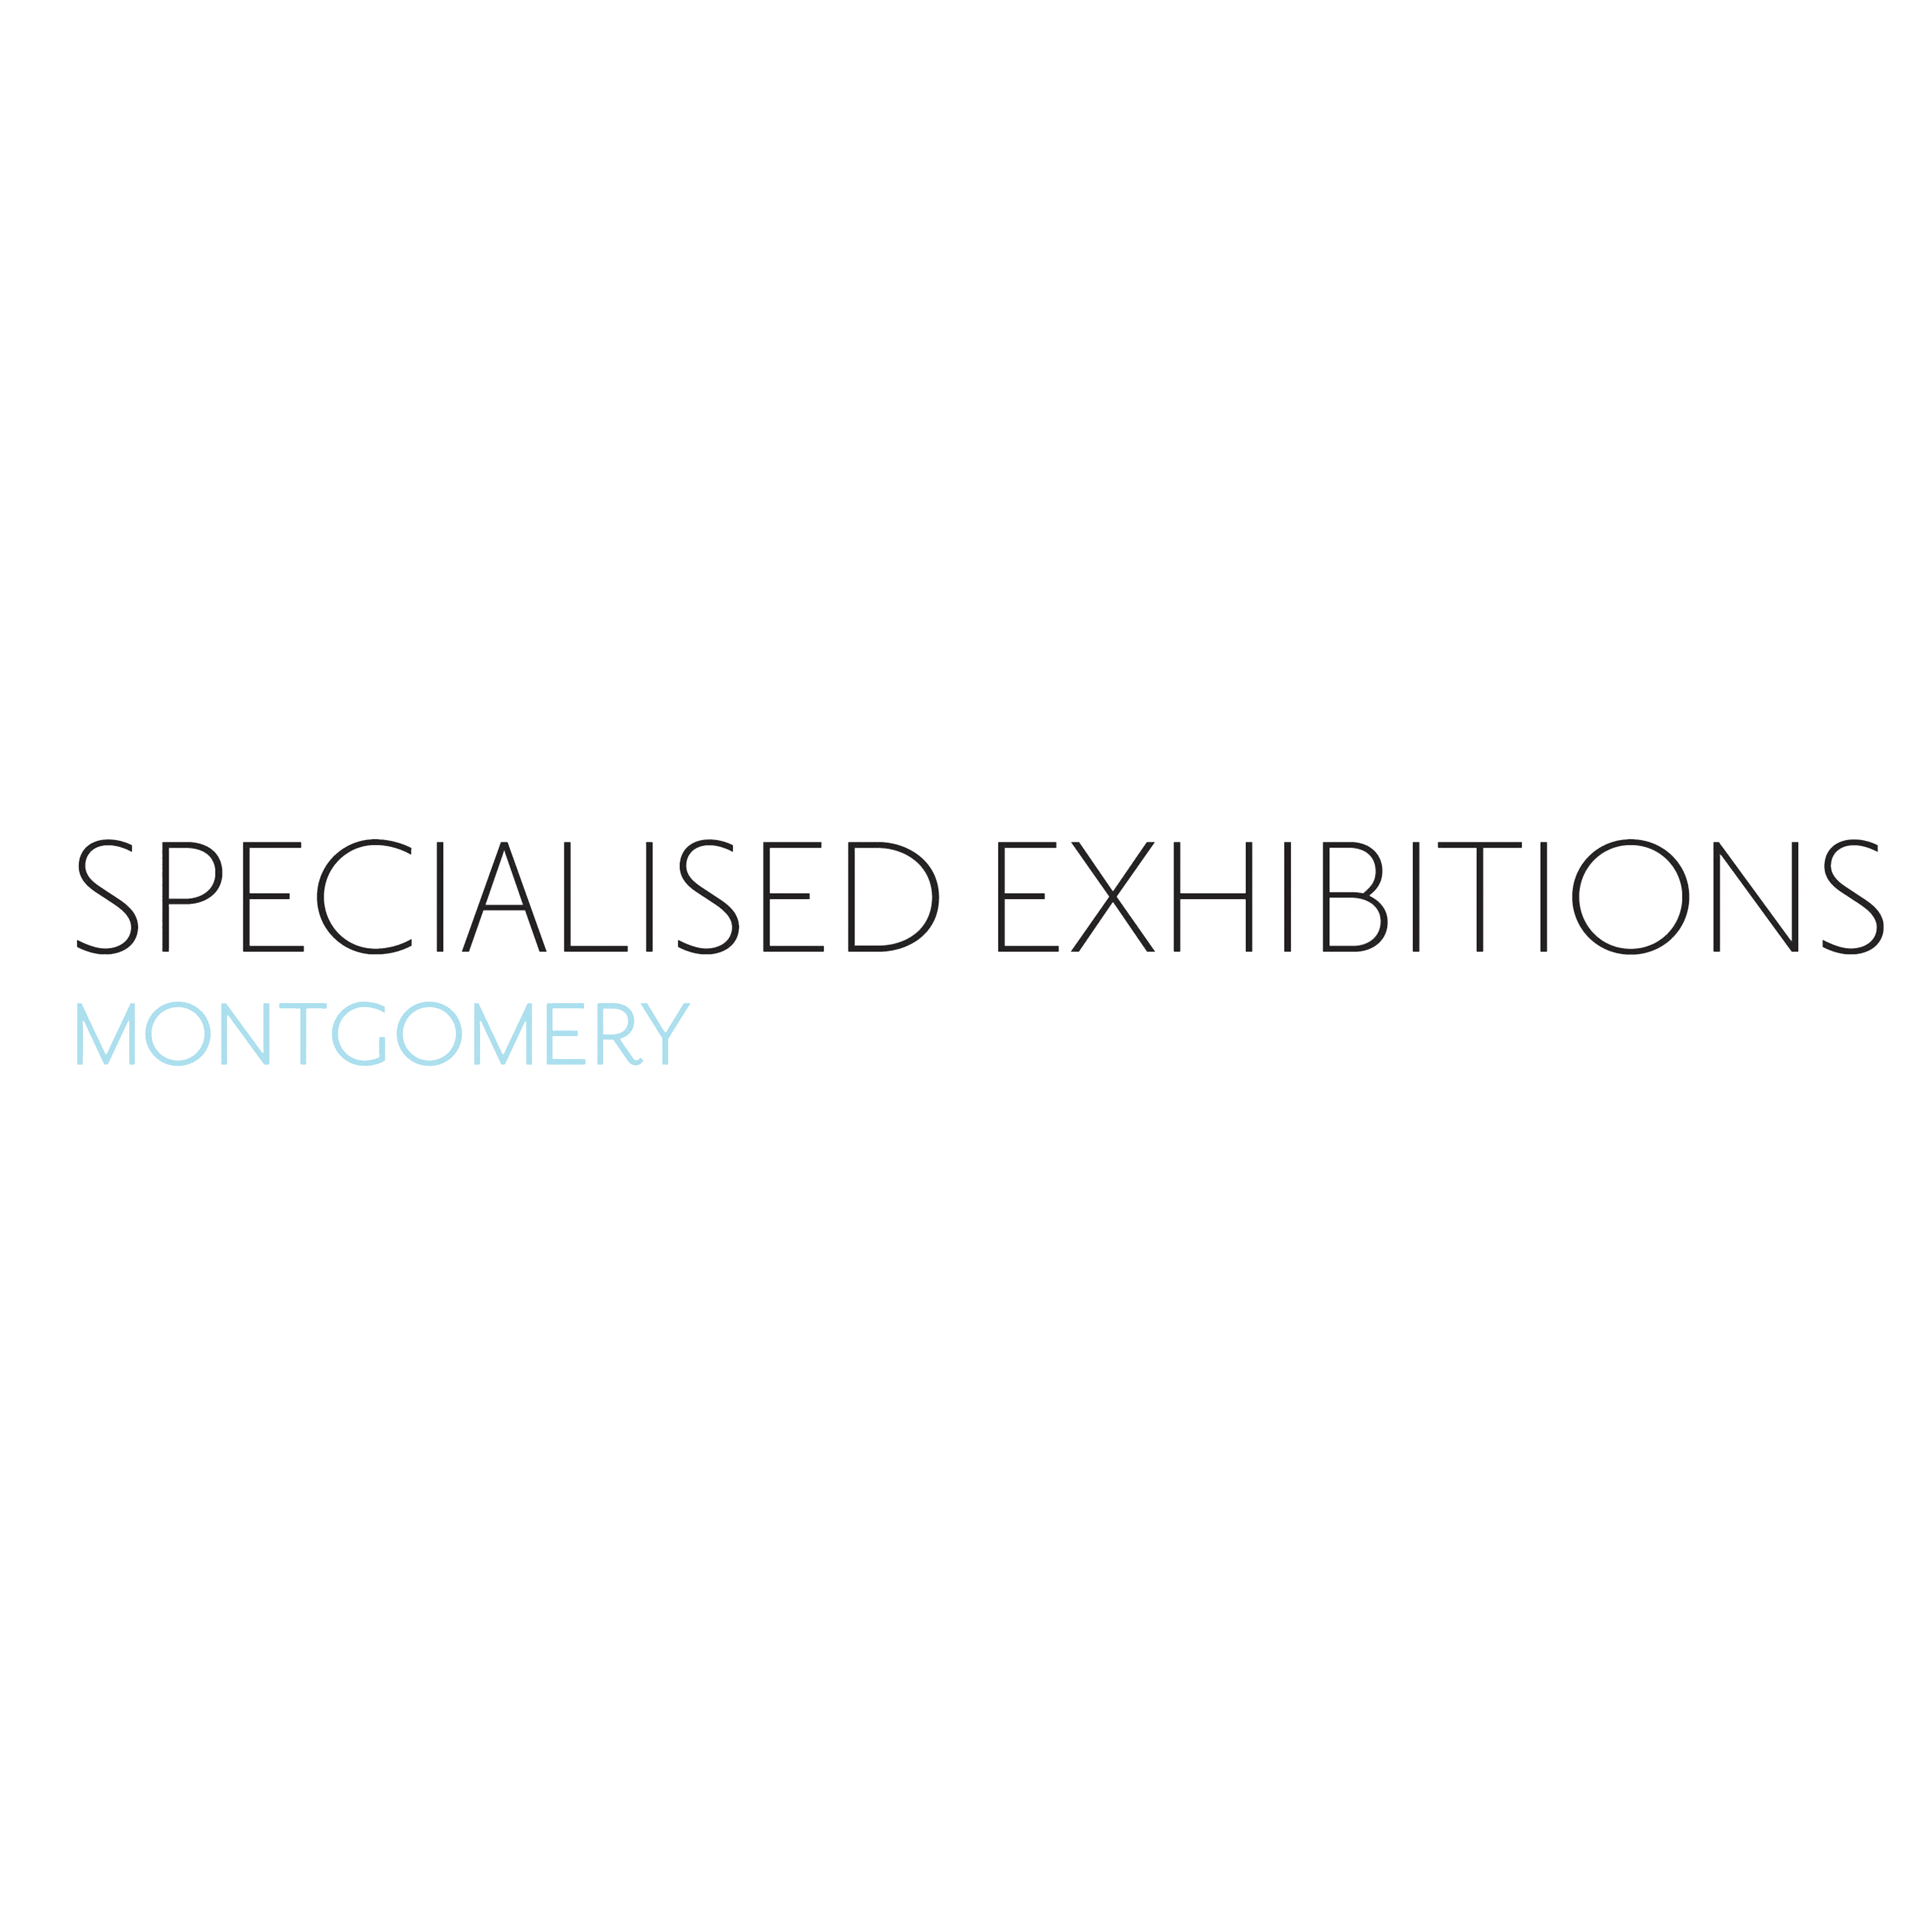 Specialised Exhibitions Montgomery (Pty) Ltd